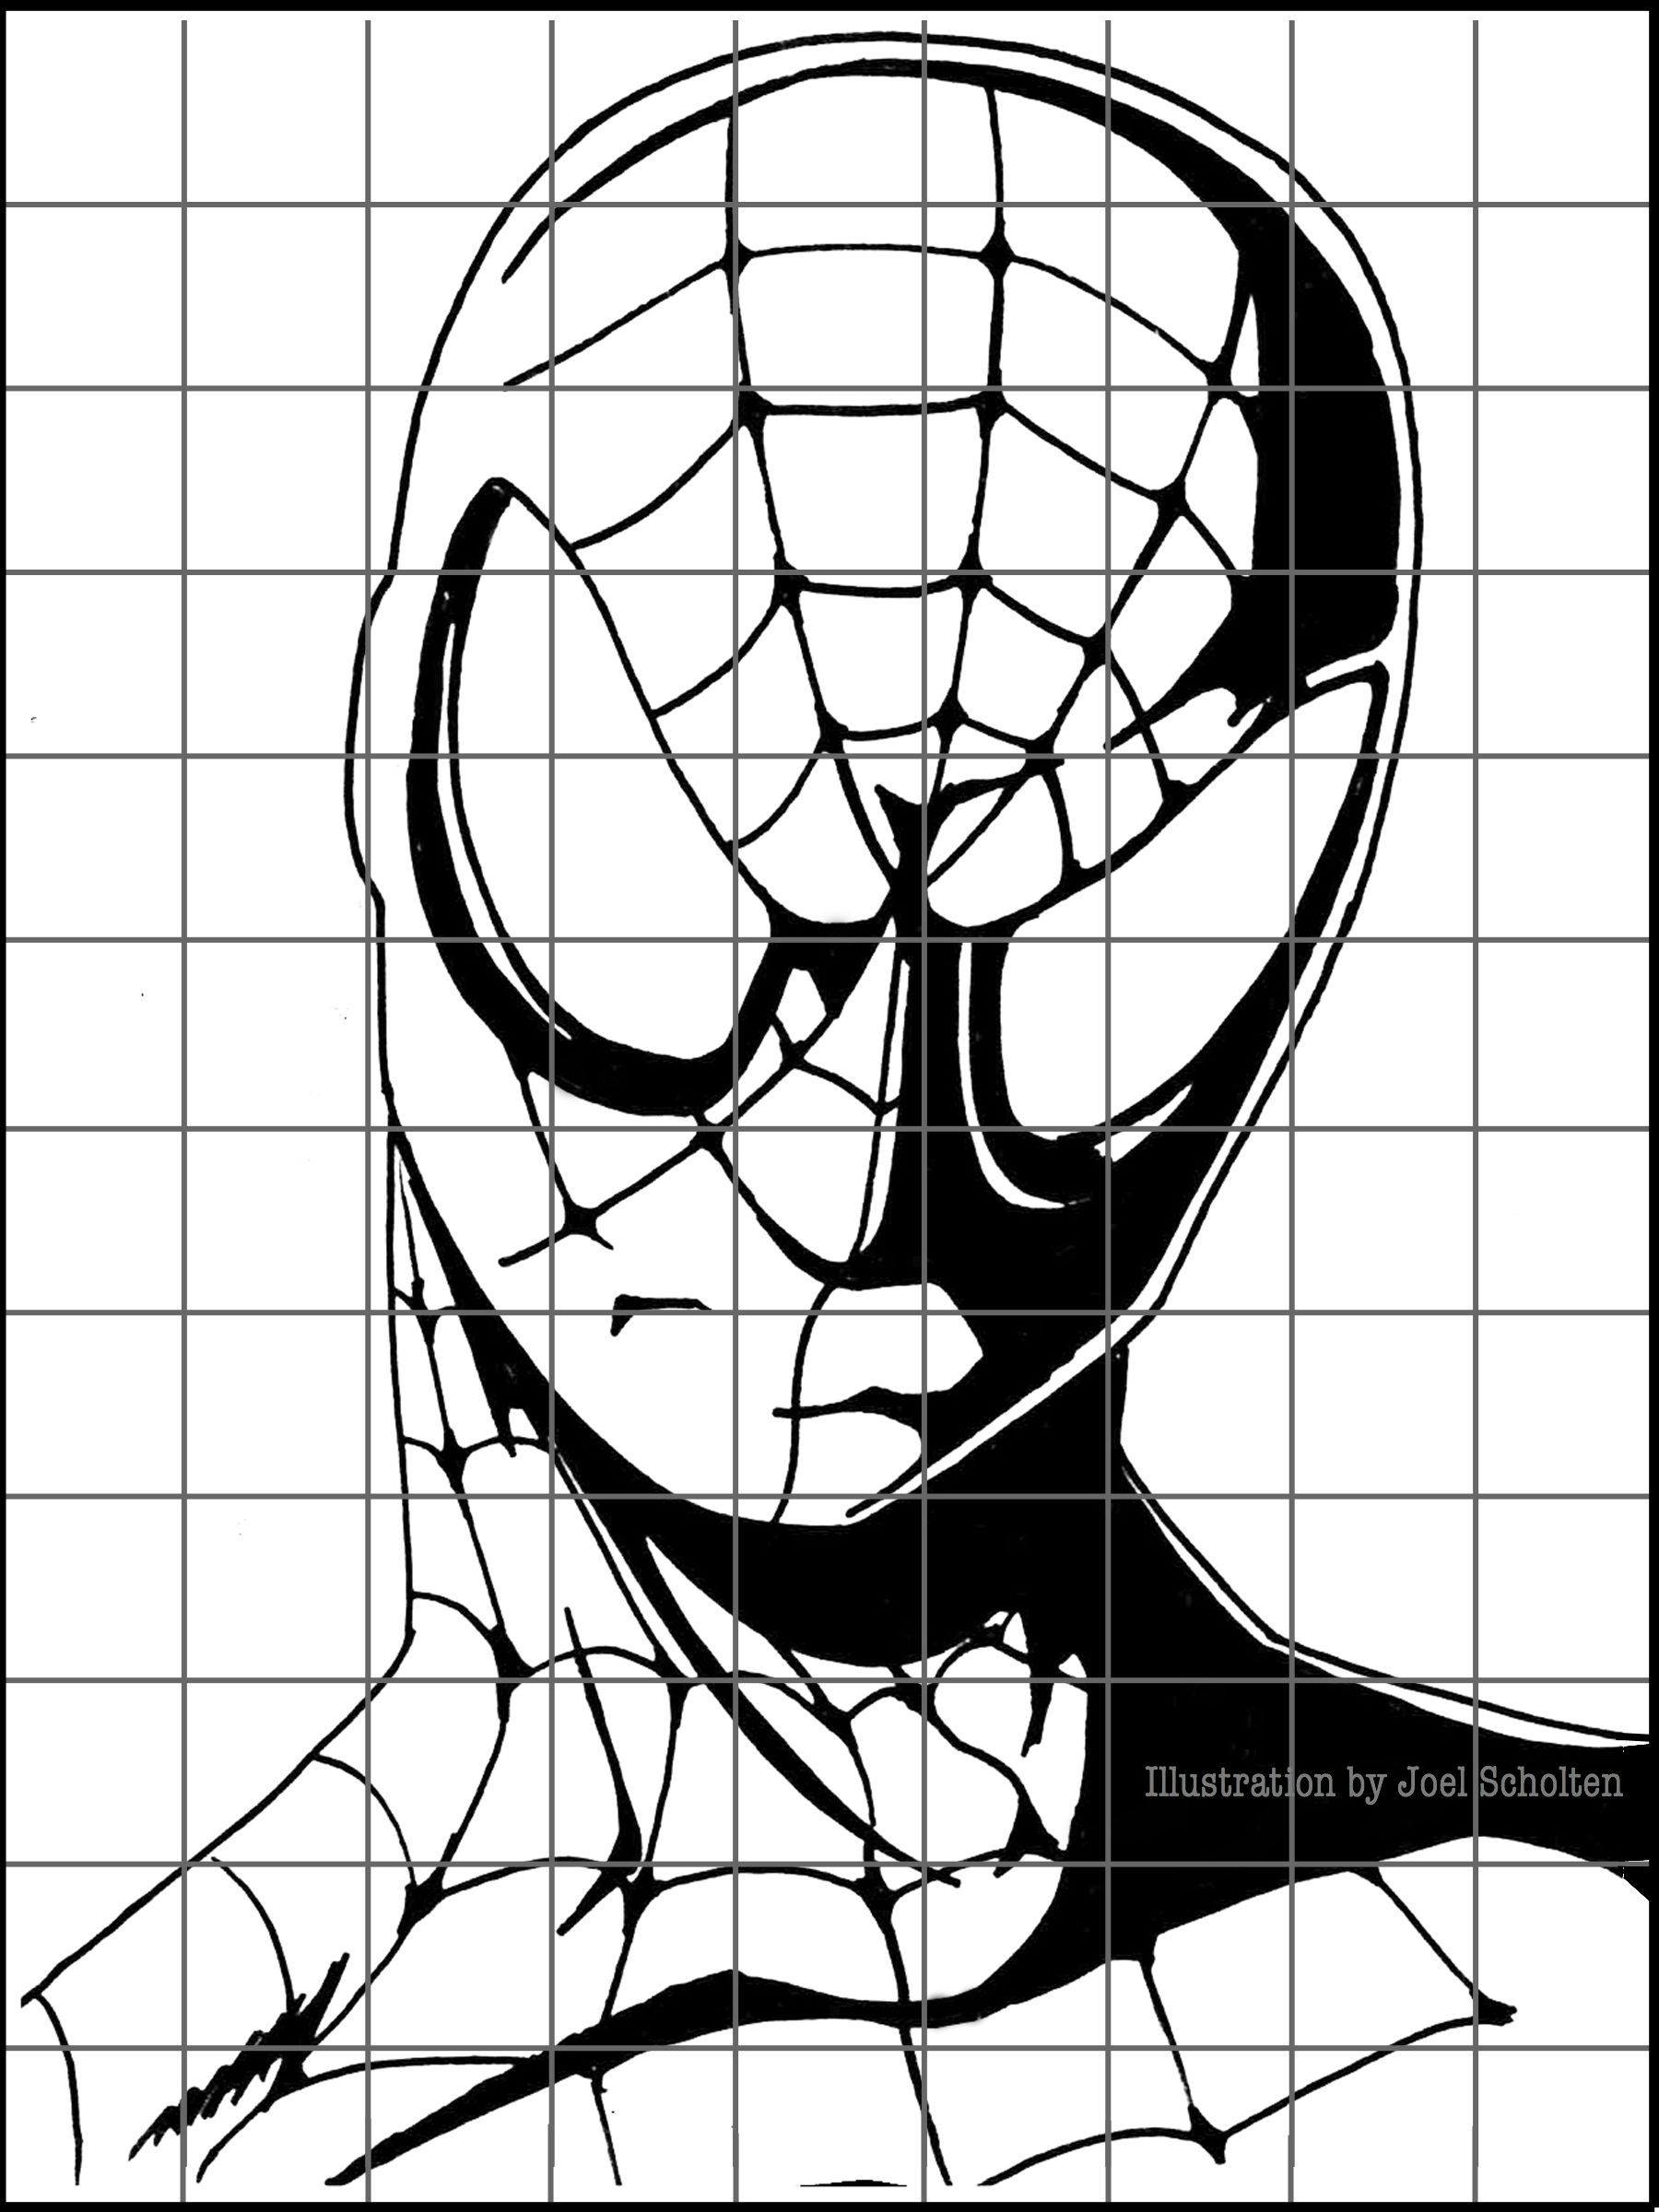 Drawing Superheroes Is A Great Way To Keep 6th Grade Students Interested In Grid Drawings The